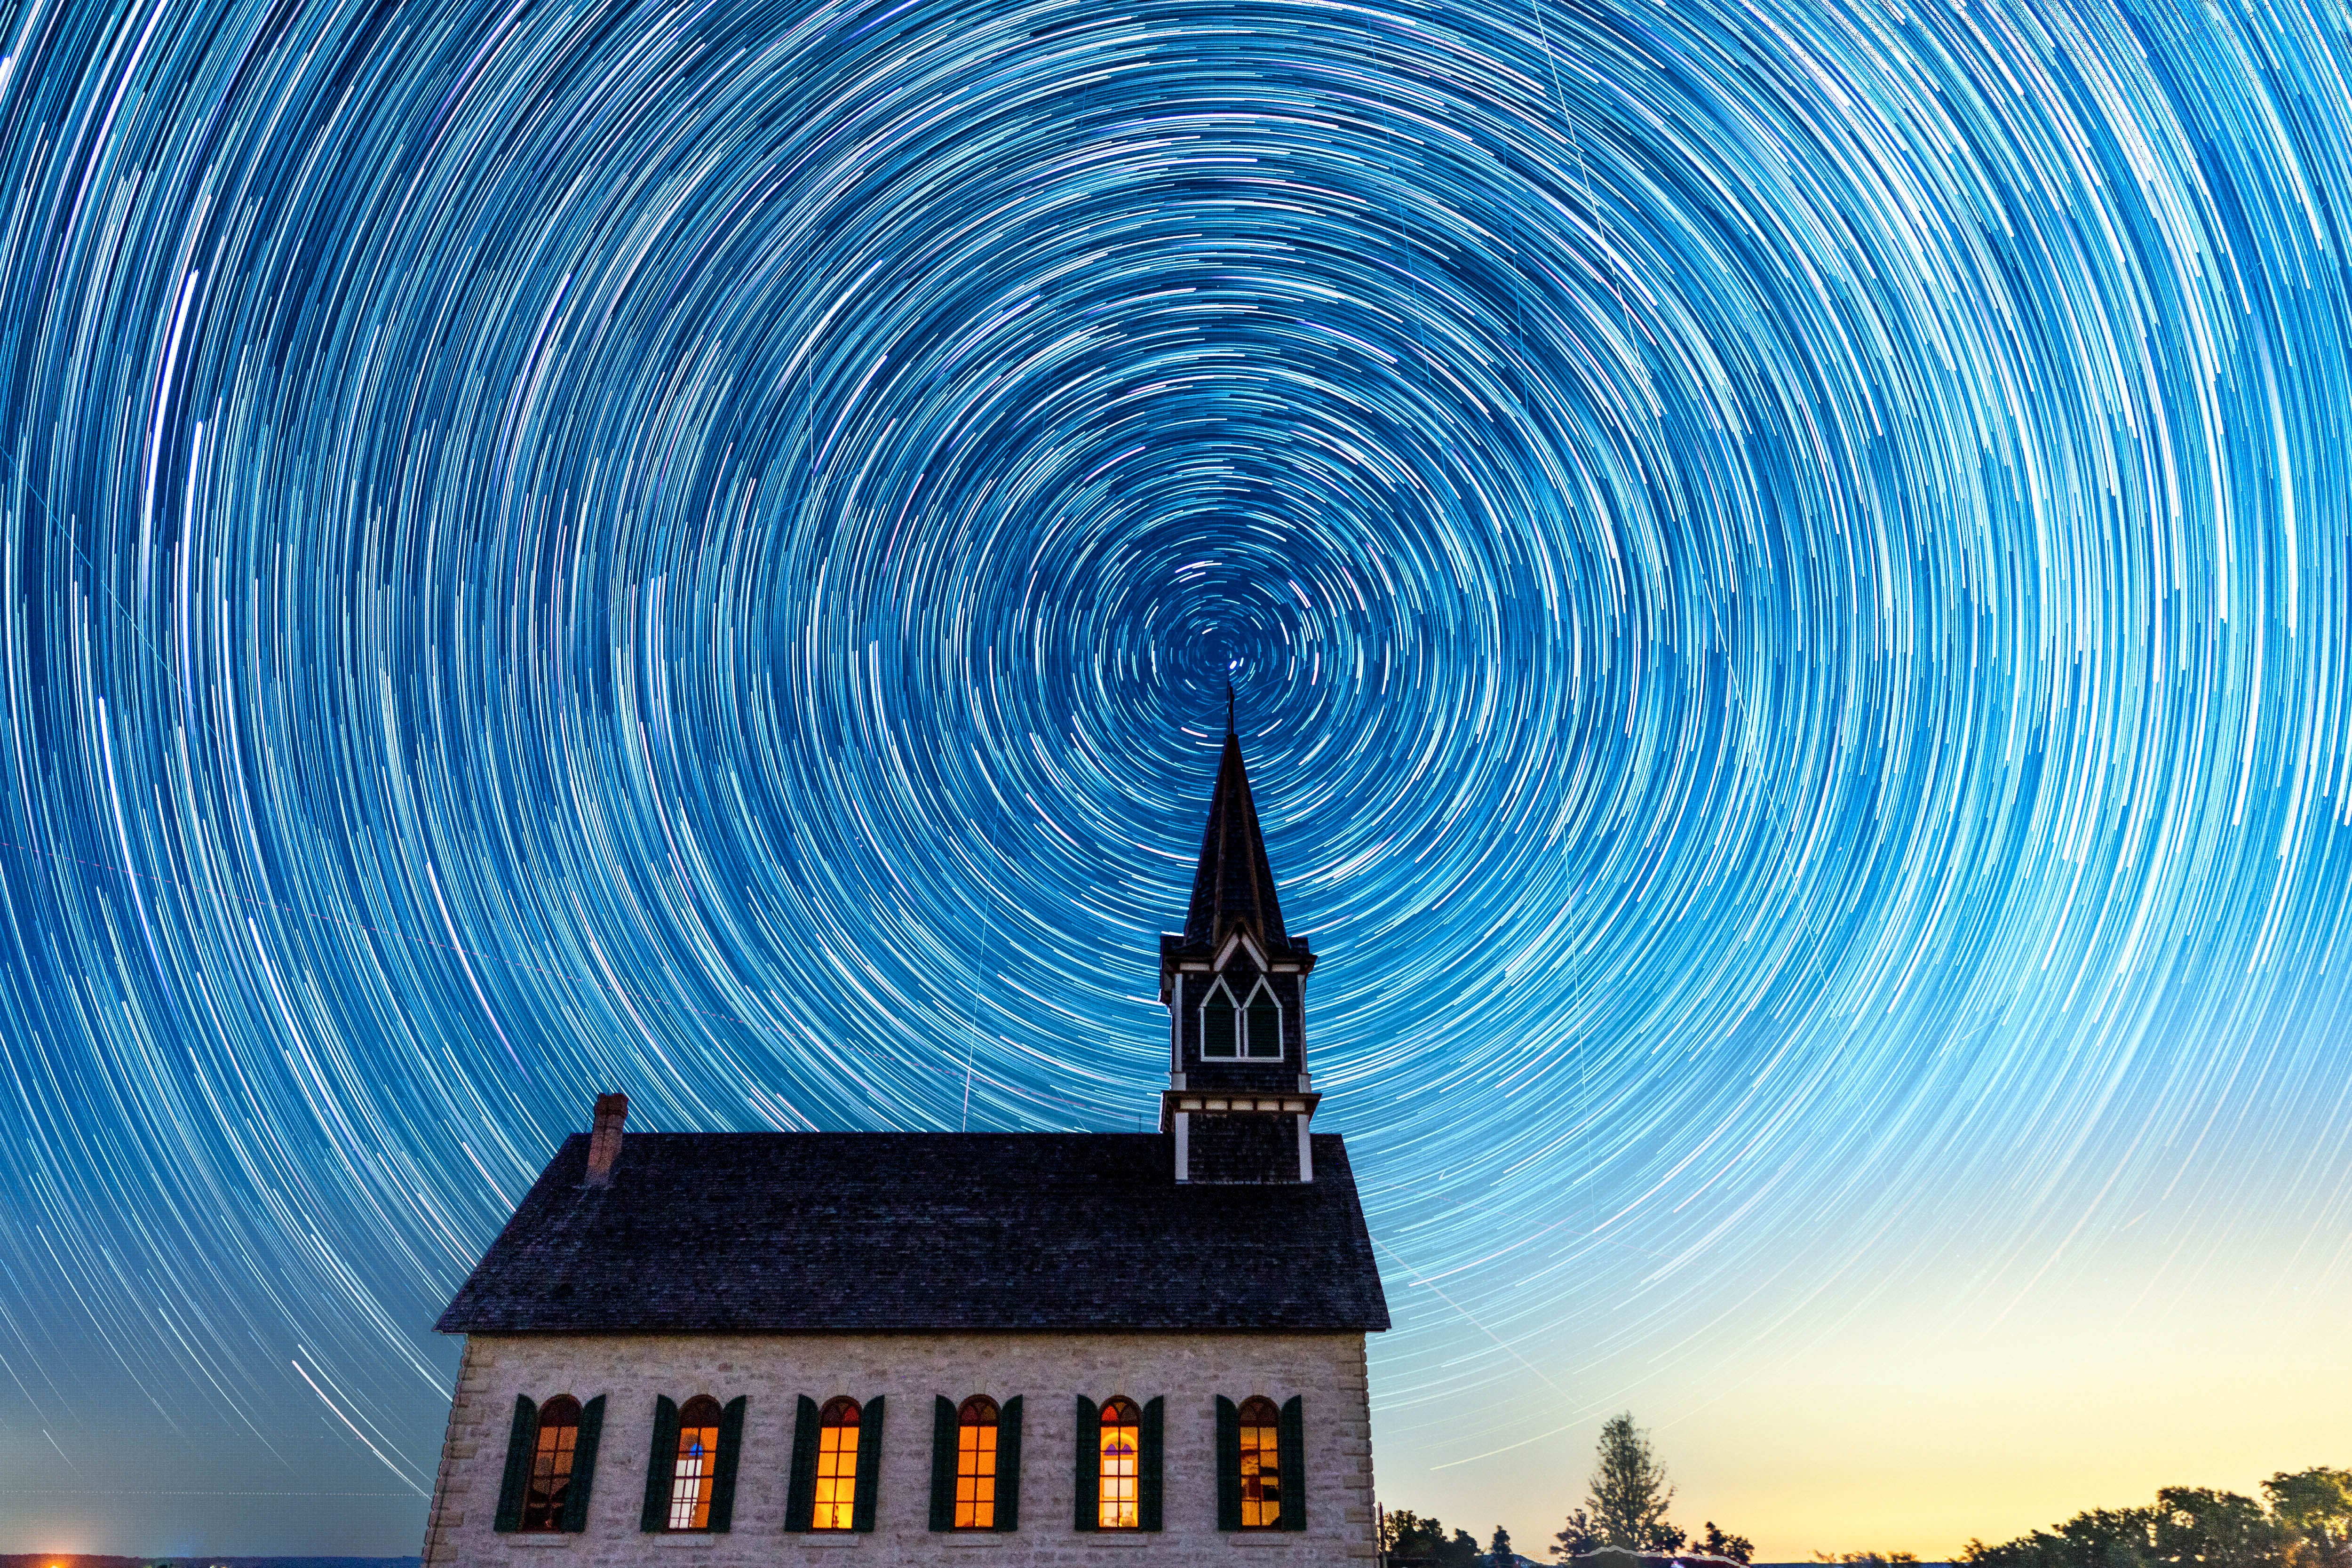 Alpha-Universe-Behind-The-Shot-Andy-Luten-Star-Trail.jpg